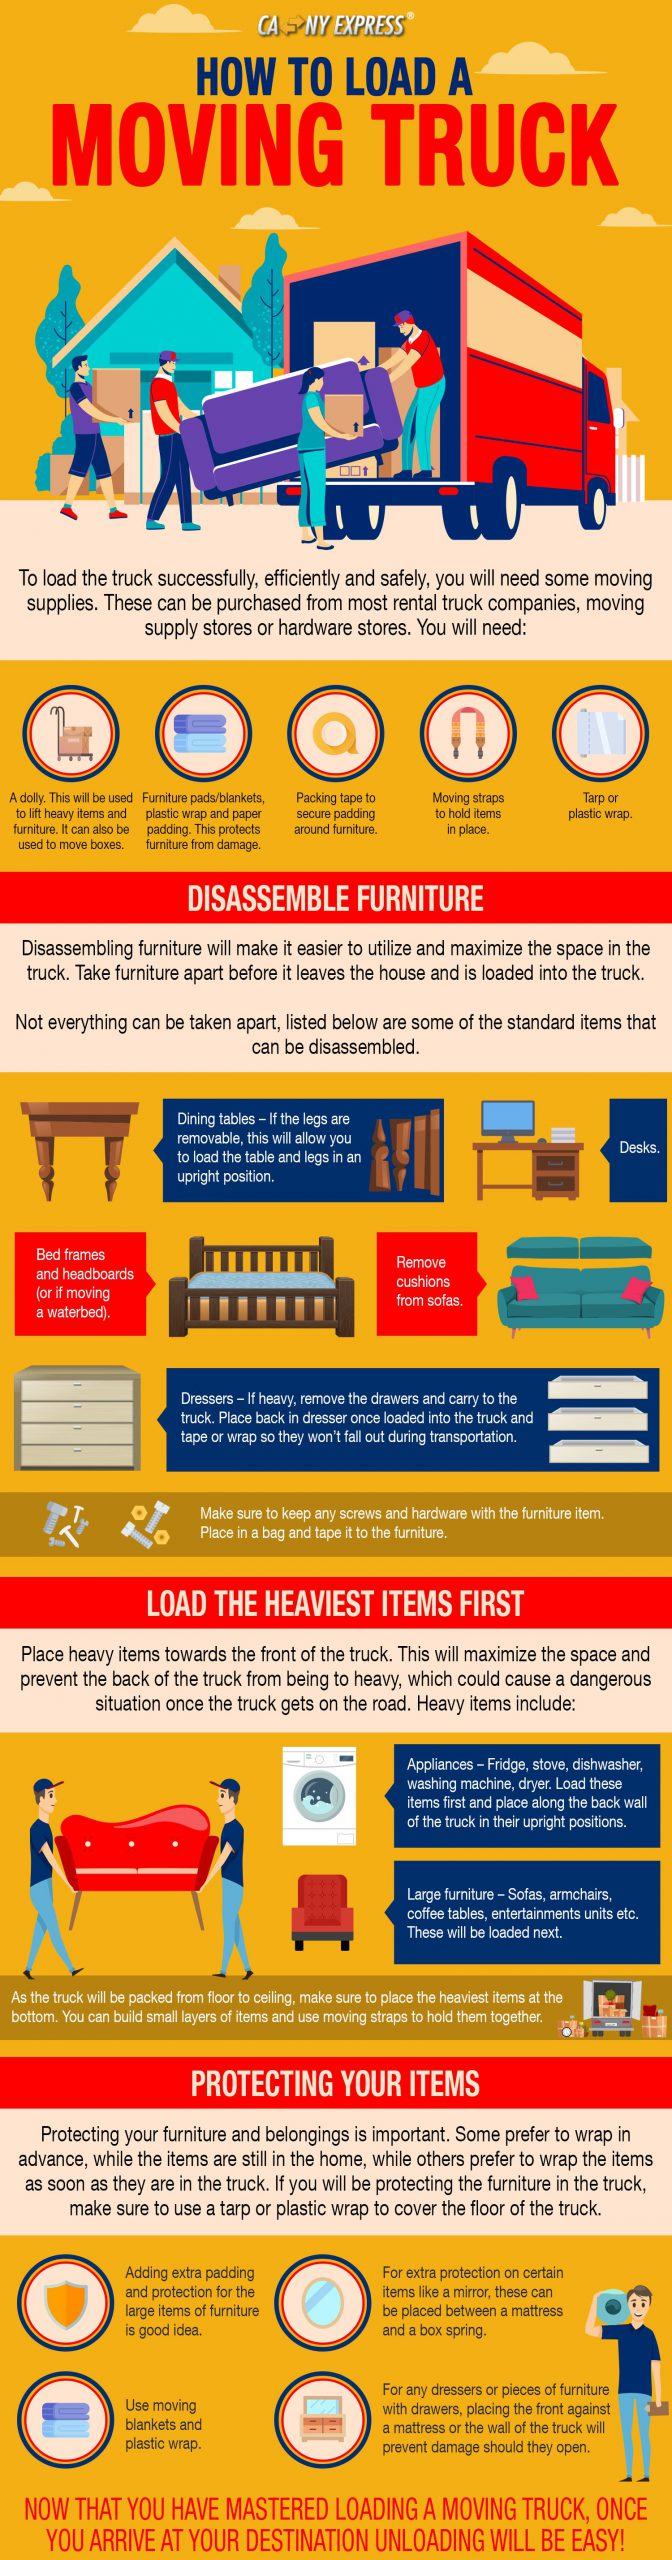 How to load a moving truck infographic by CA NY Express Movers